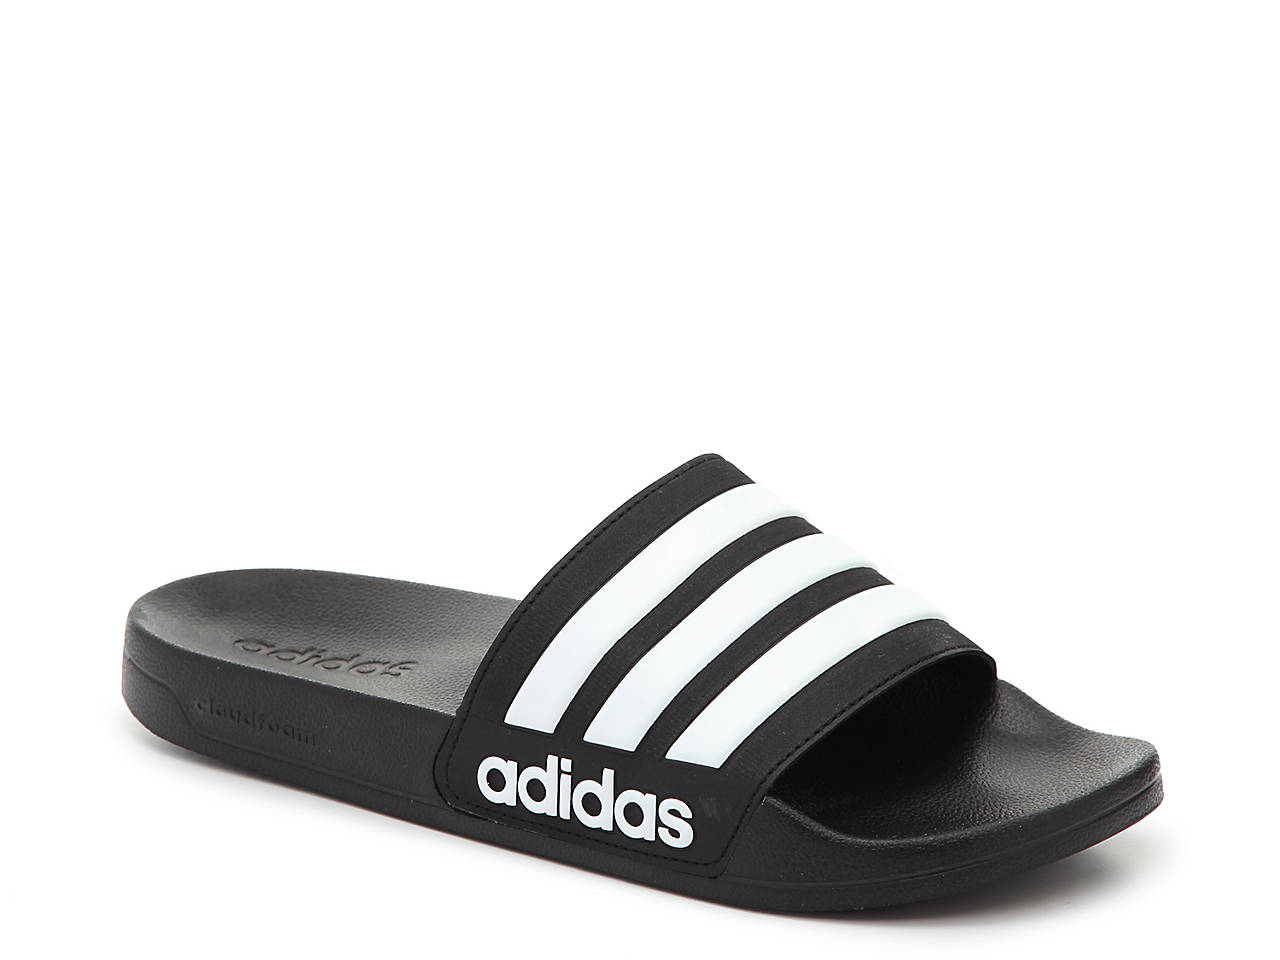 418a1a1c2811 adidas Adilette Shower Slide Sandal - Men s Men s Shoes